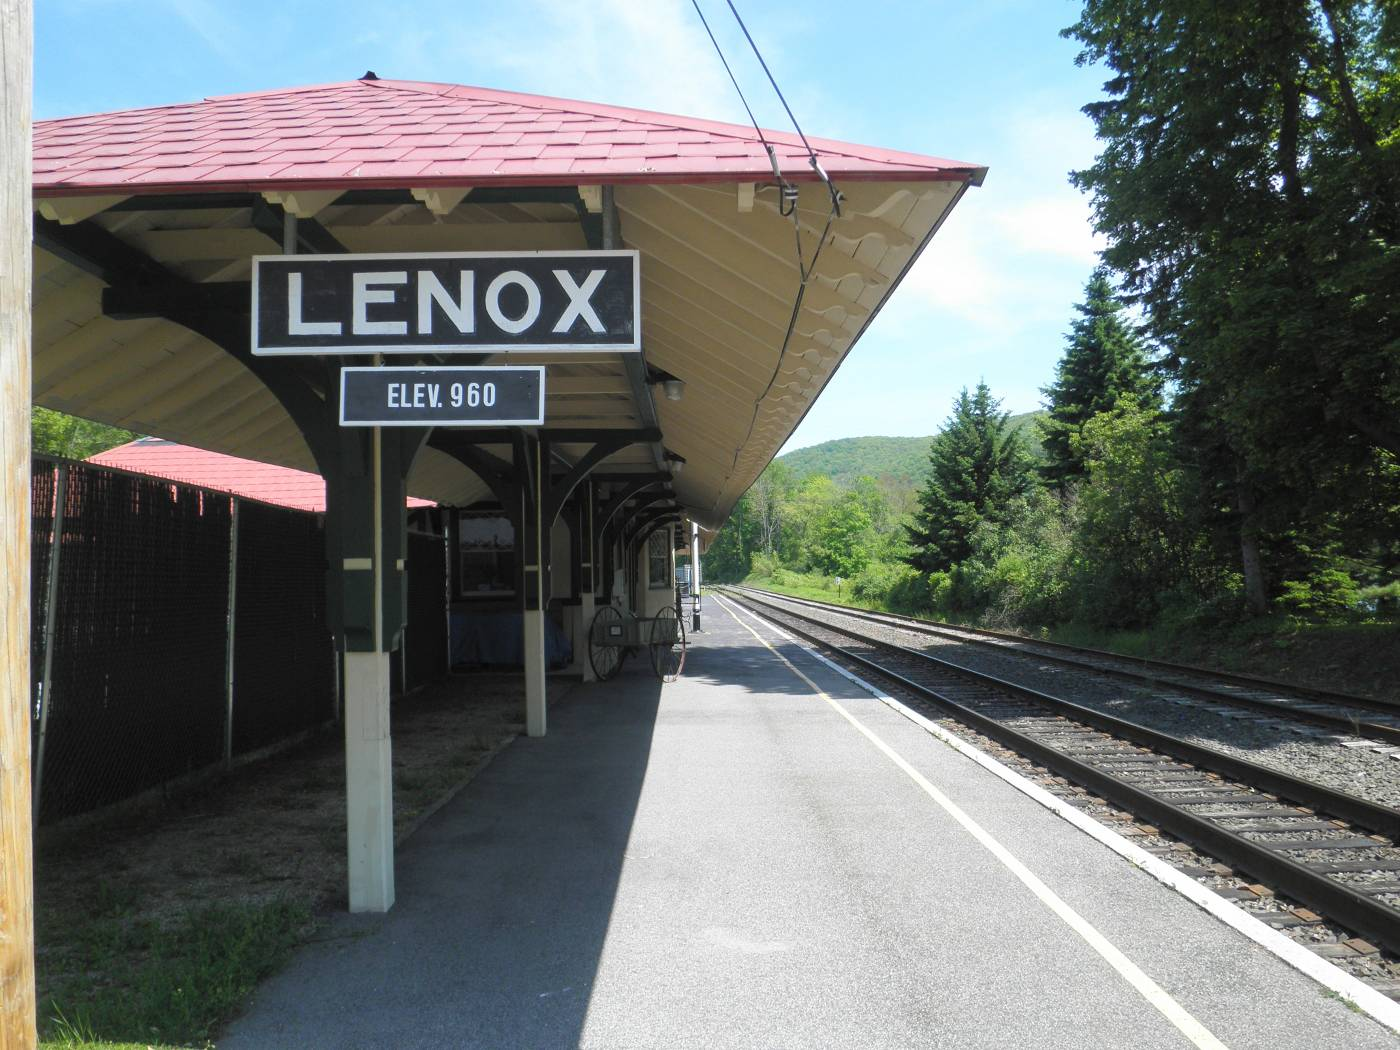 Lenox train depot at Woods Pond, Berkshire Scenic Railway